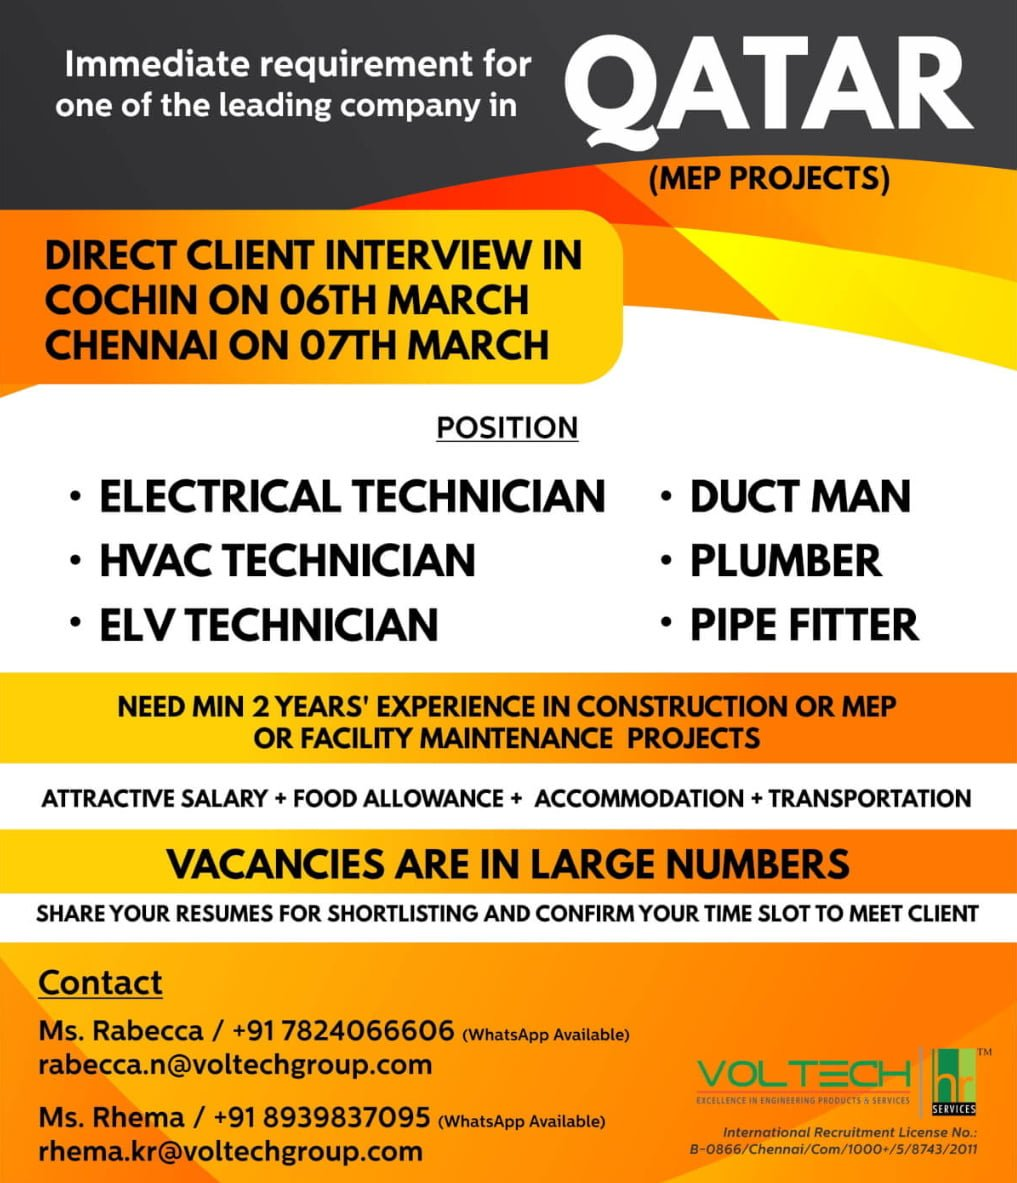 IMMEDIATE REQUIREMENT FOR A LEADING COMPANY-QATAR